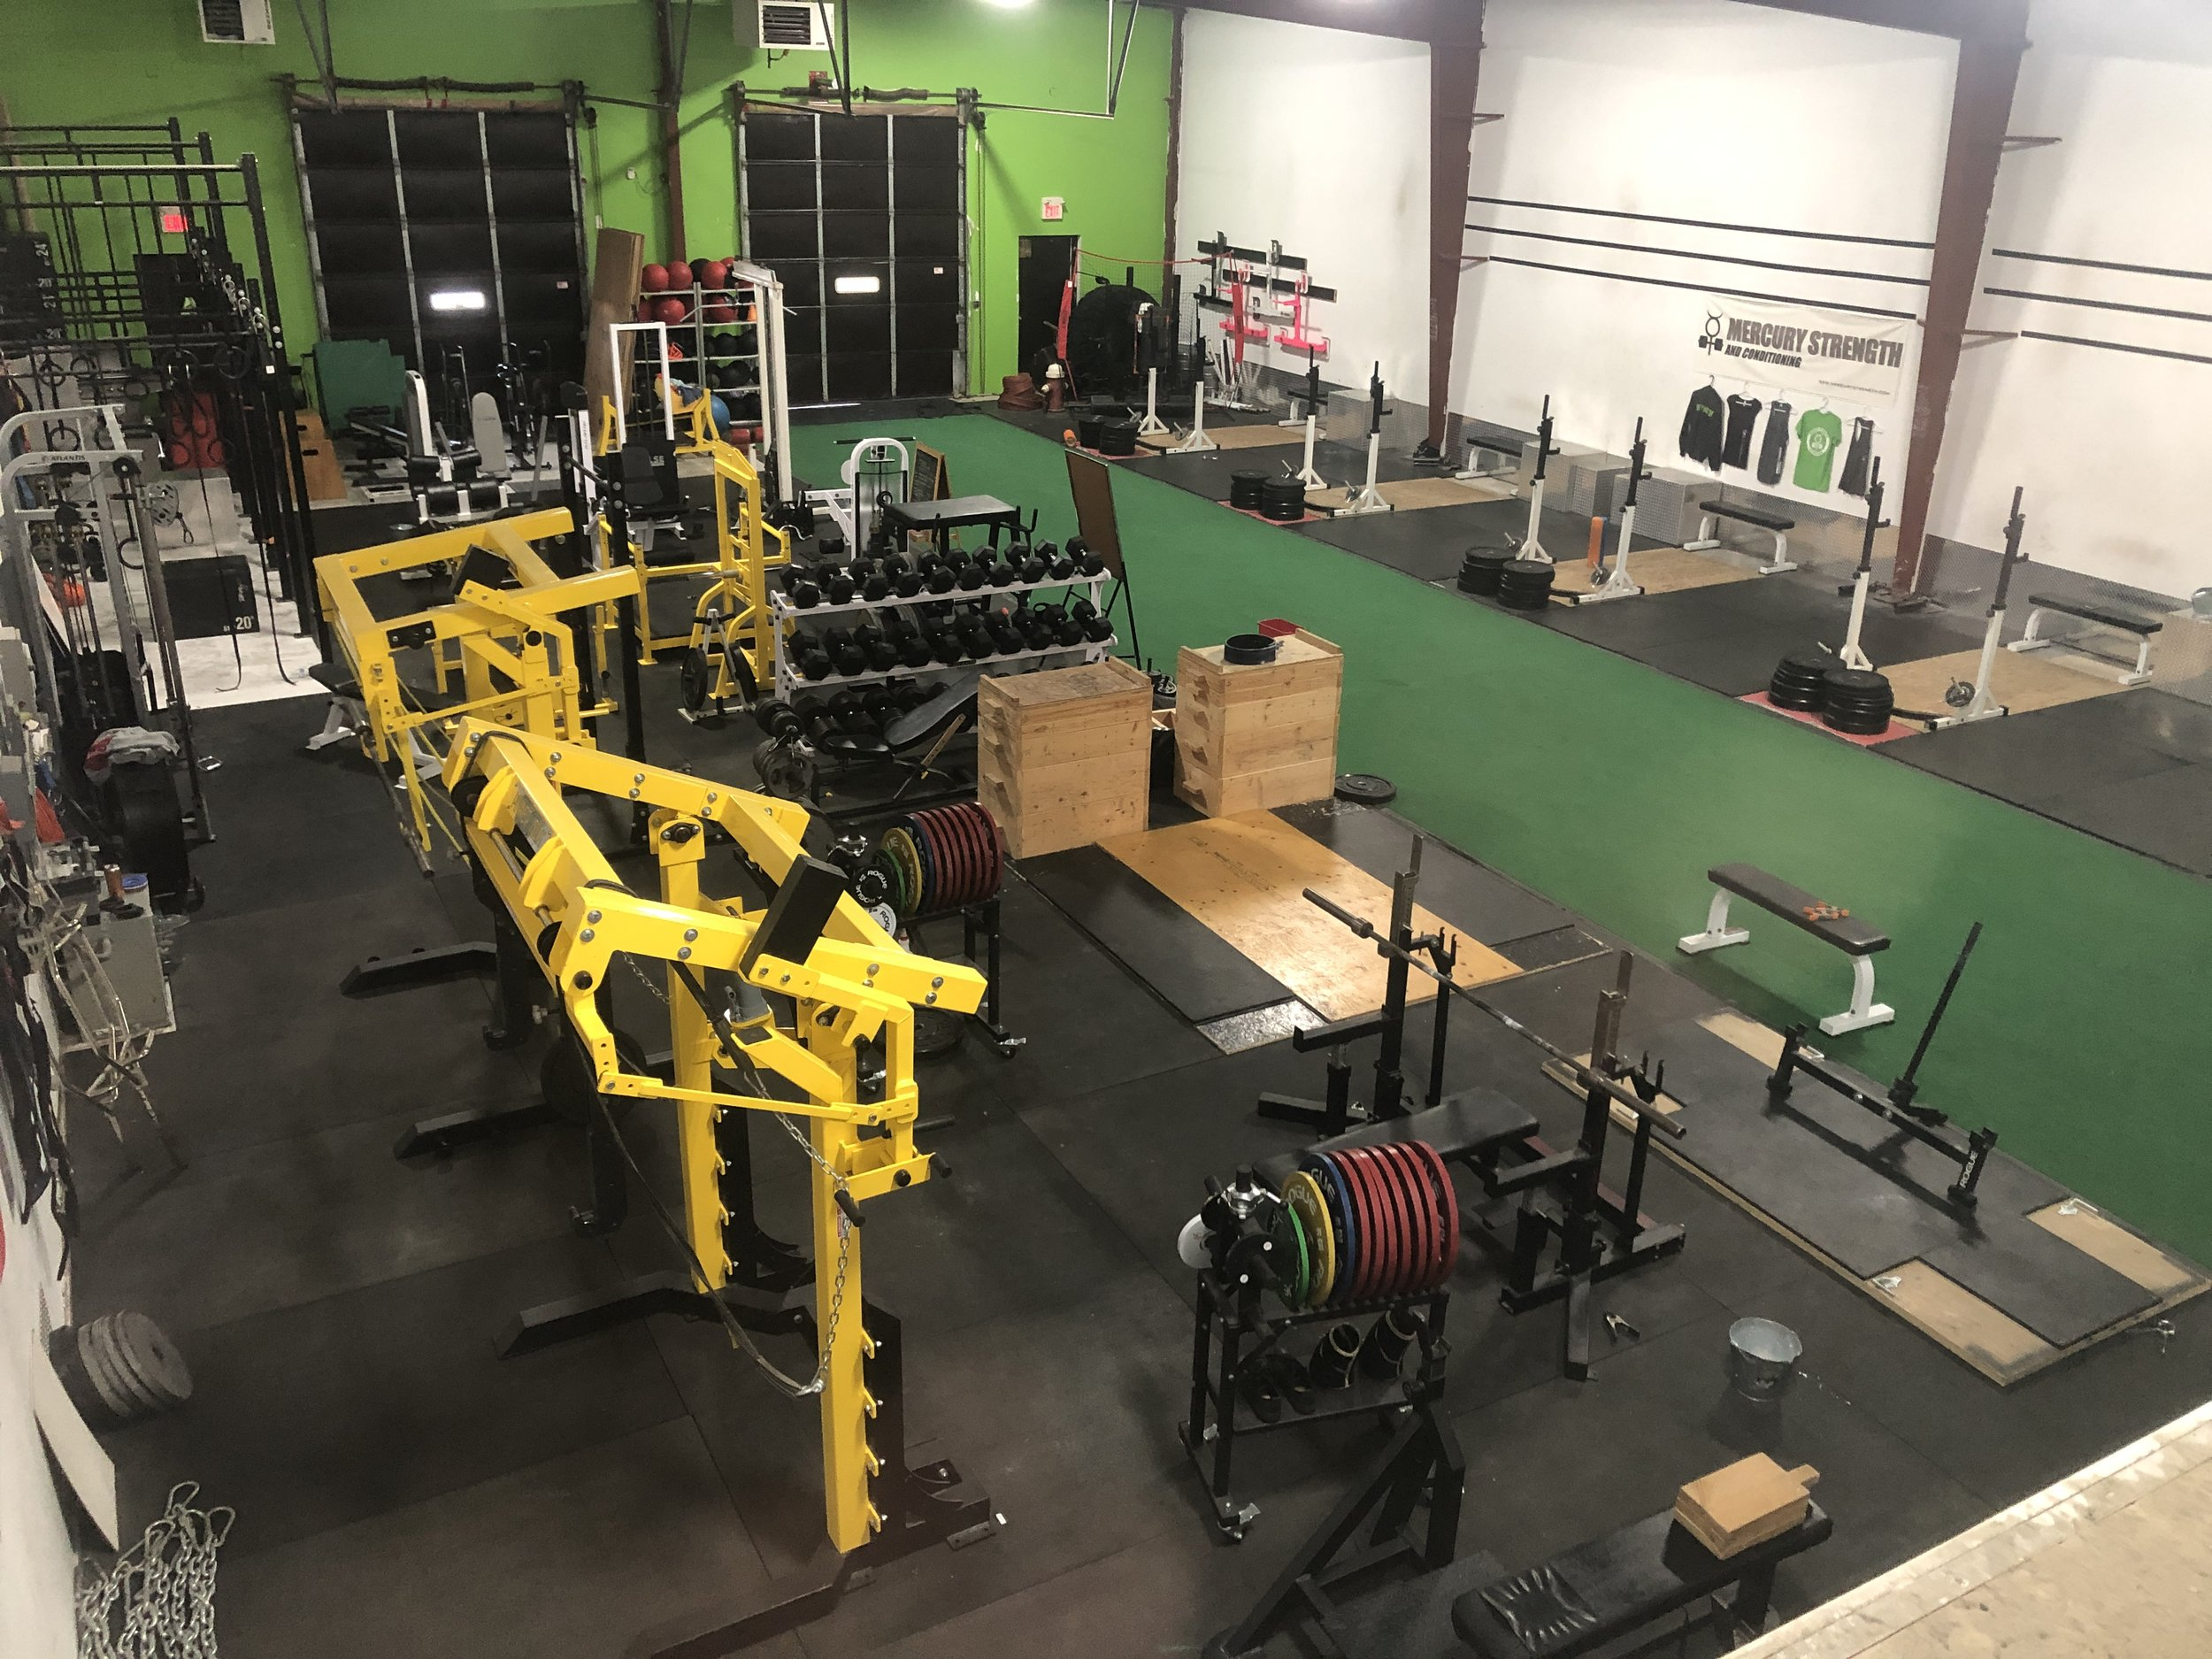 Want to train on your own? No problem!